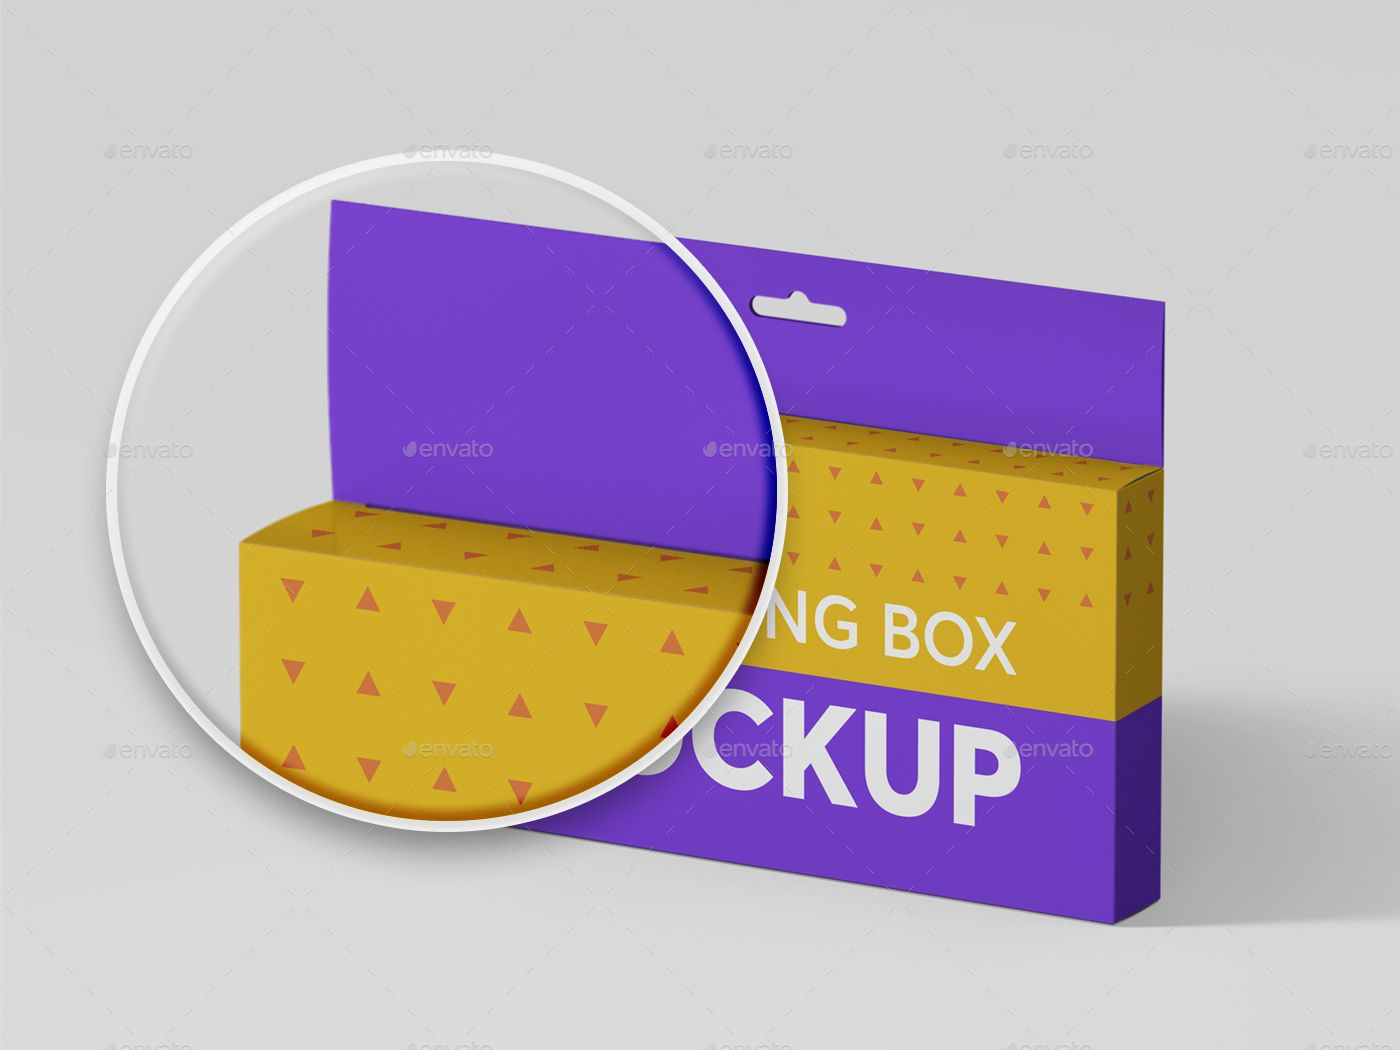 Download Hanging Wide Rectangle Box Mockups Box Mockup Box Packaging Design Graphic Design Layouts